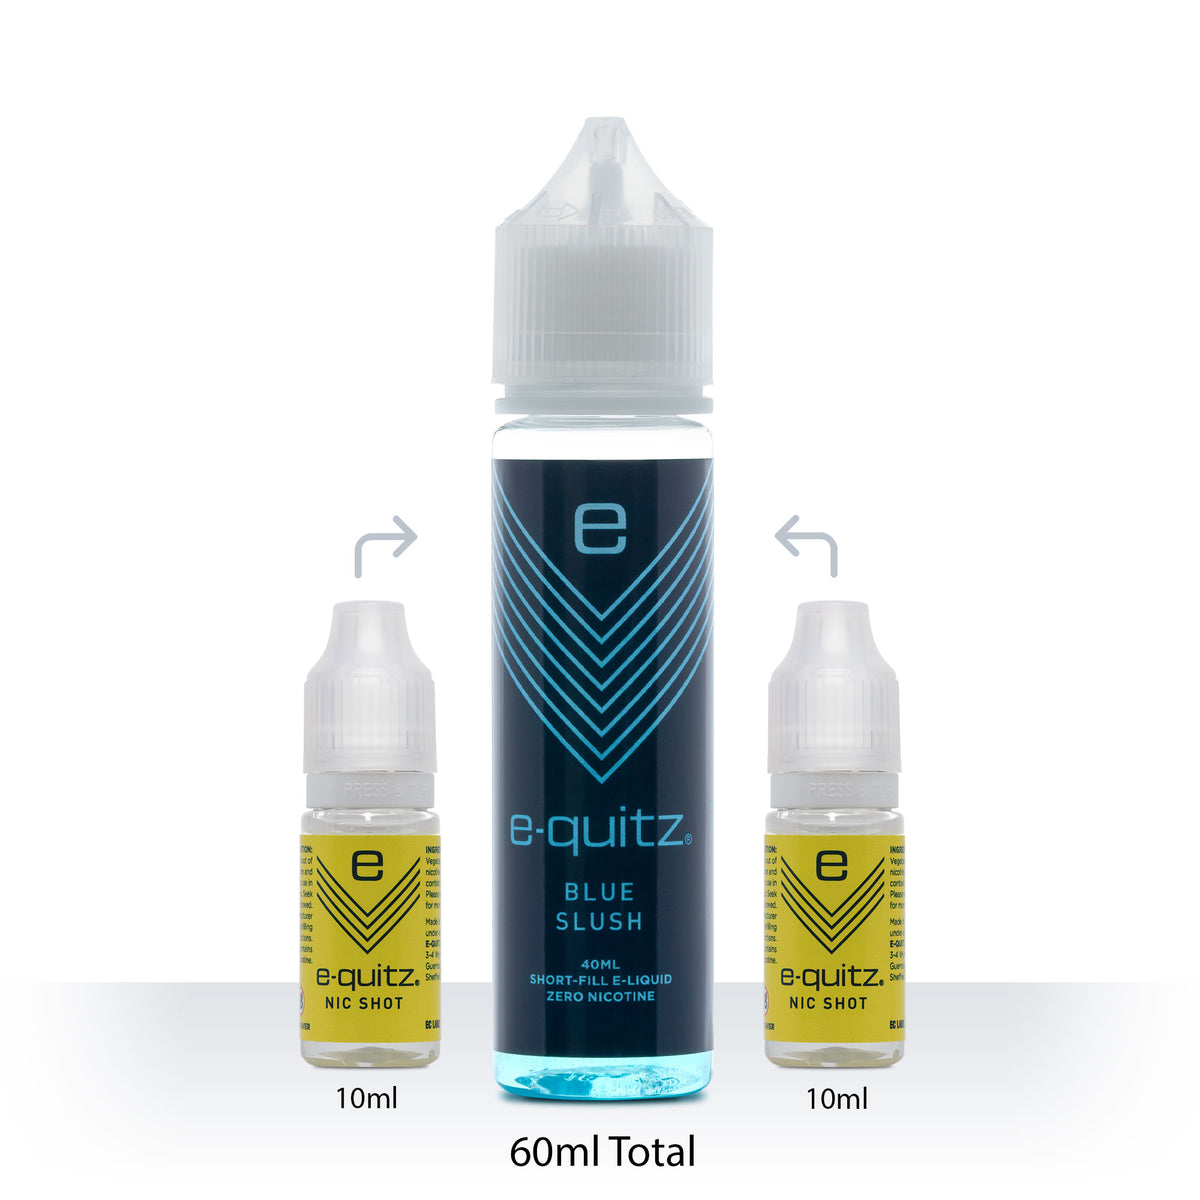 e-quitz blue slush short fill range